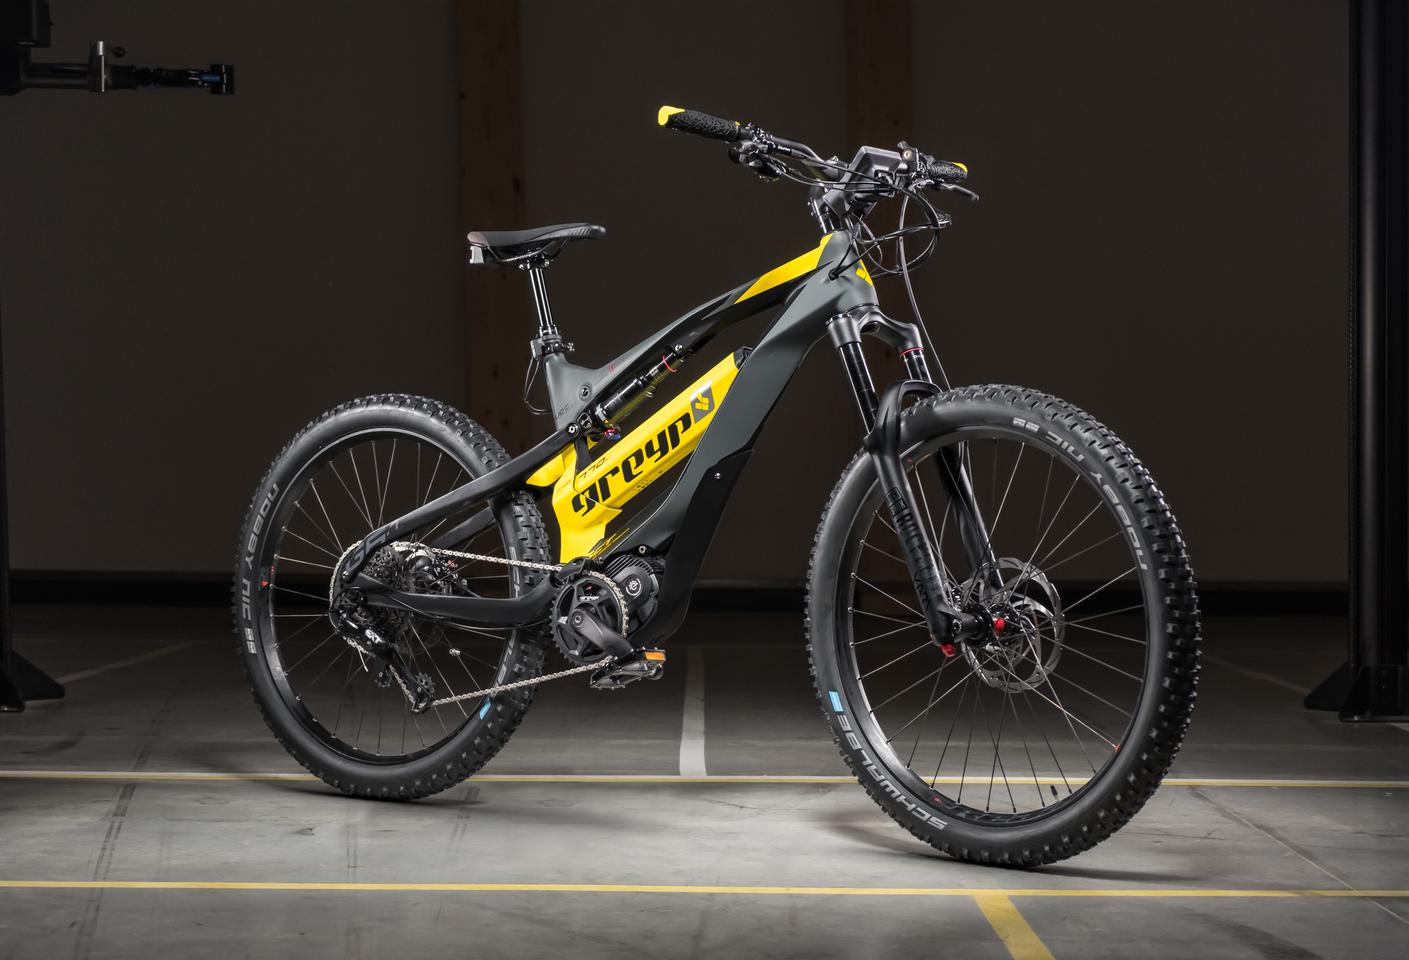 The Greyp G6 Bold FS model is the entry level bike of the range, priced at €6,499